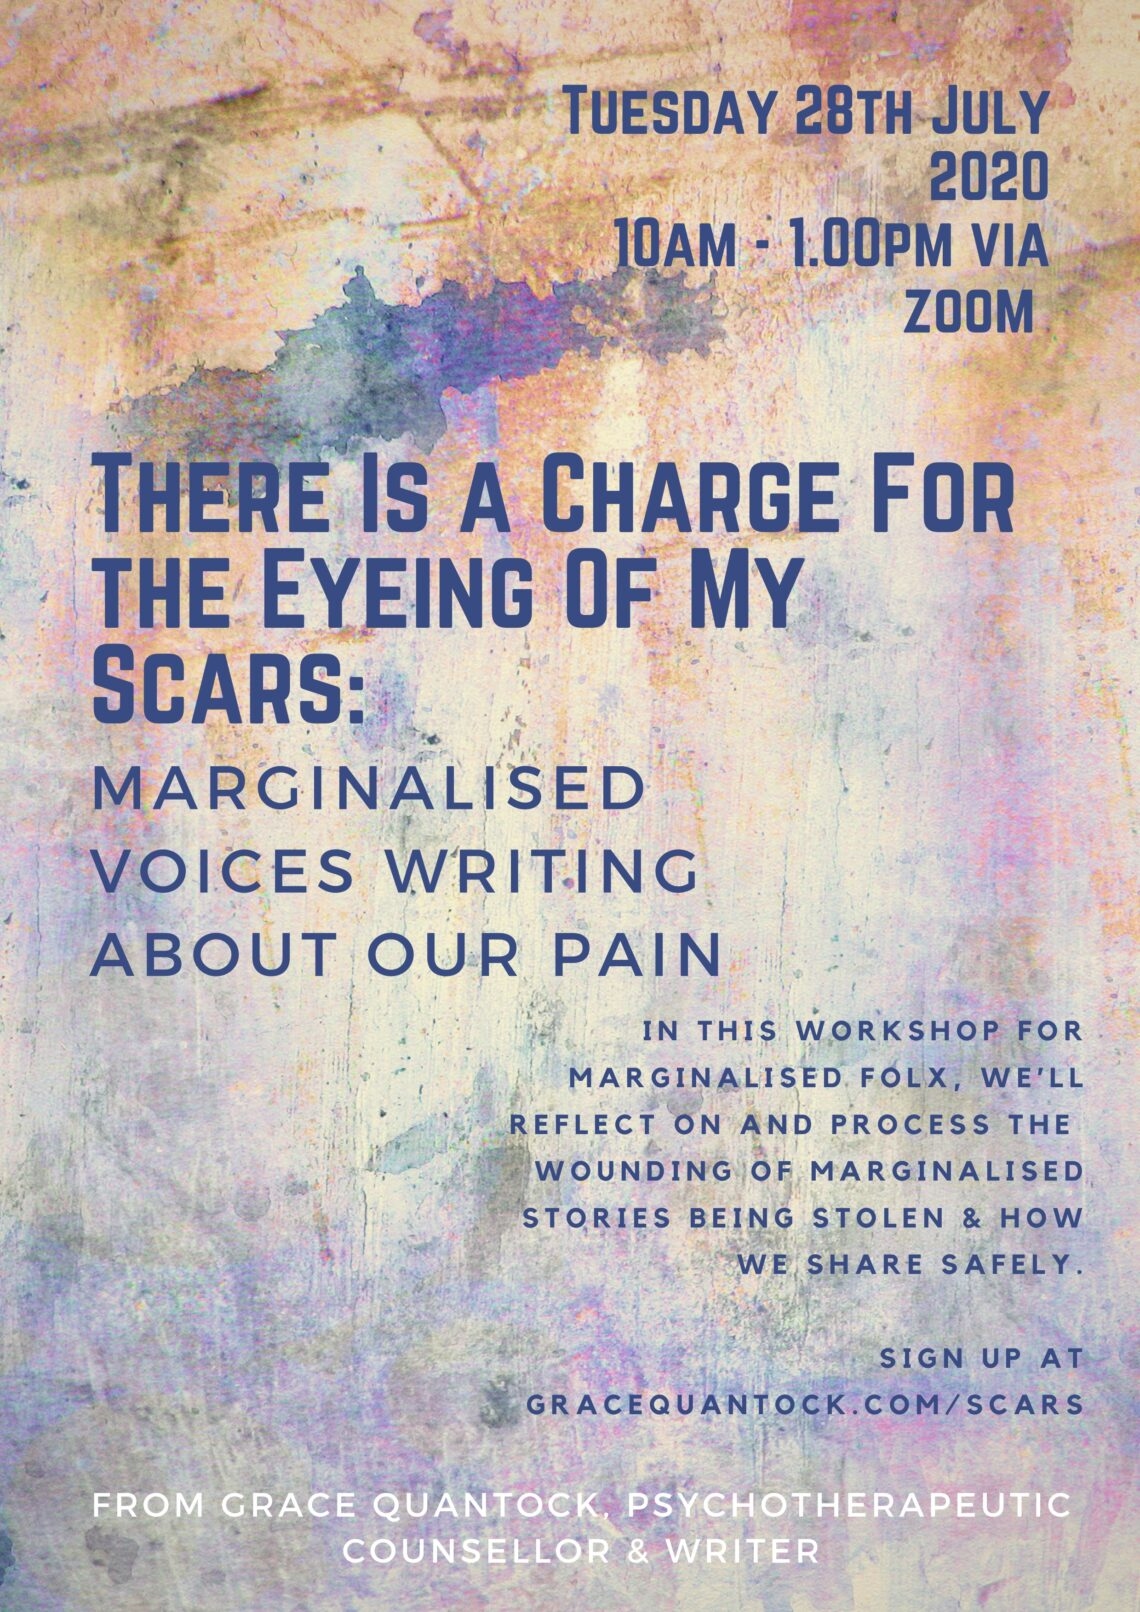 There is a charge for the eyeing of my scars, marginalised voices writing about our pain. Tuesday 28th July 2020. 10am to 1pm via Zoom. Transcripts will be available after the class.